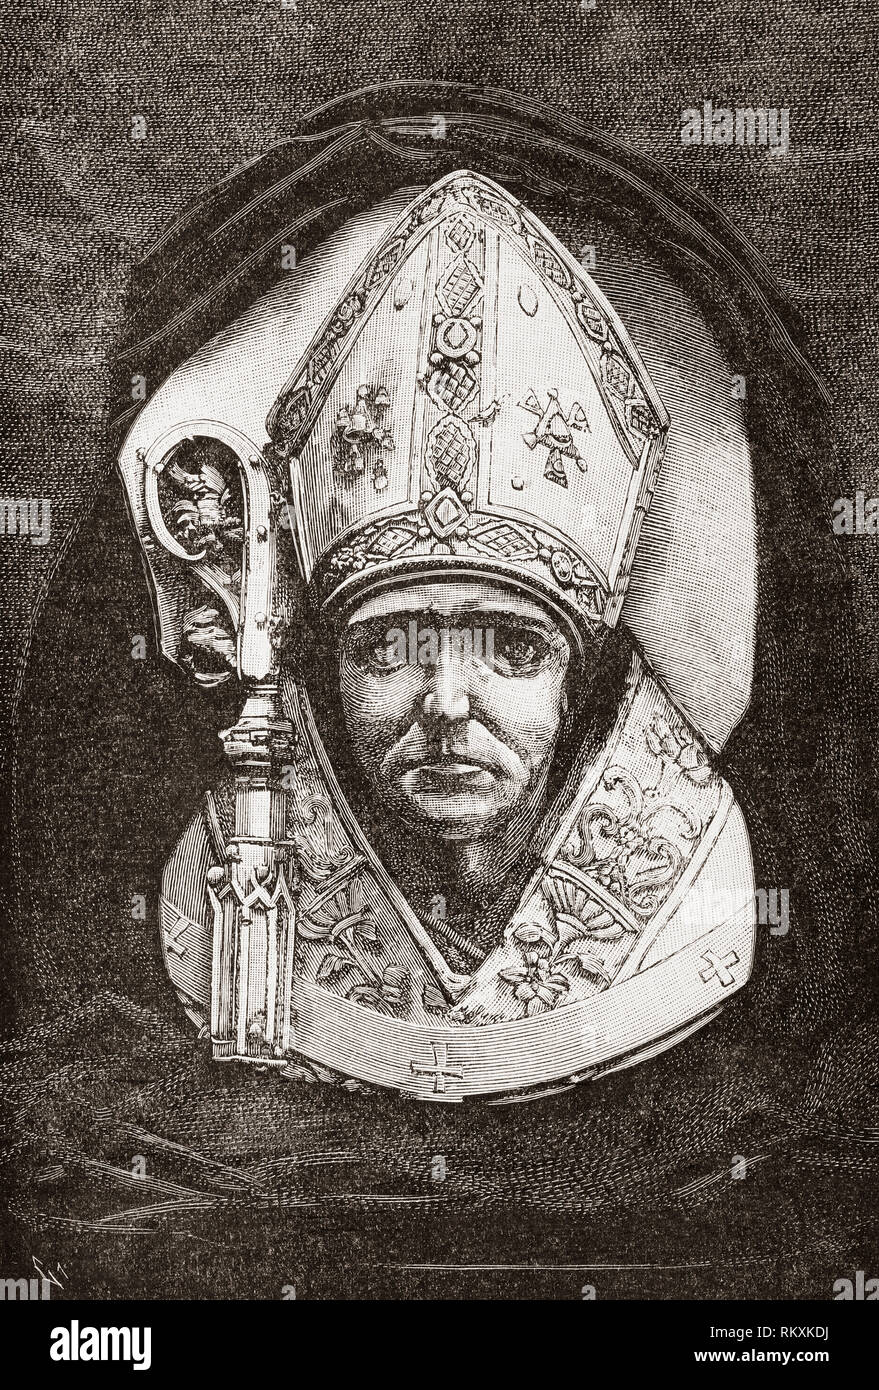 Bust of Diego de Deza, 1444 – 1523.  Theologian and inquisitor of Spain. He succeeded Tomás de Torquemada to the post of Grand Inquisitor during the Spanish Inquisition.  From La Ilustracion Espanola y Americana, published 1892. - Stock Image